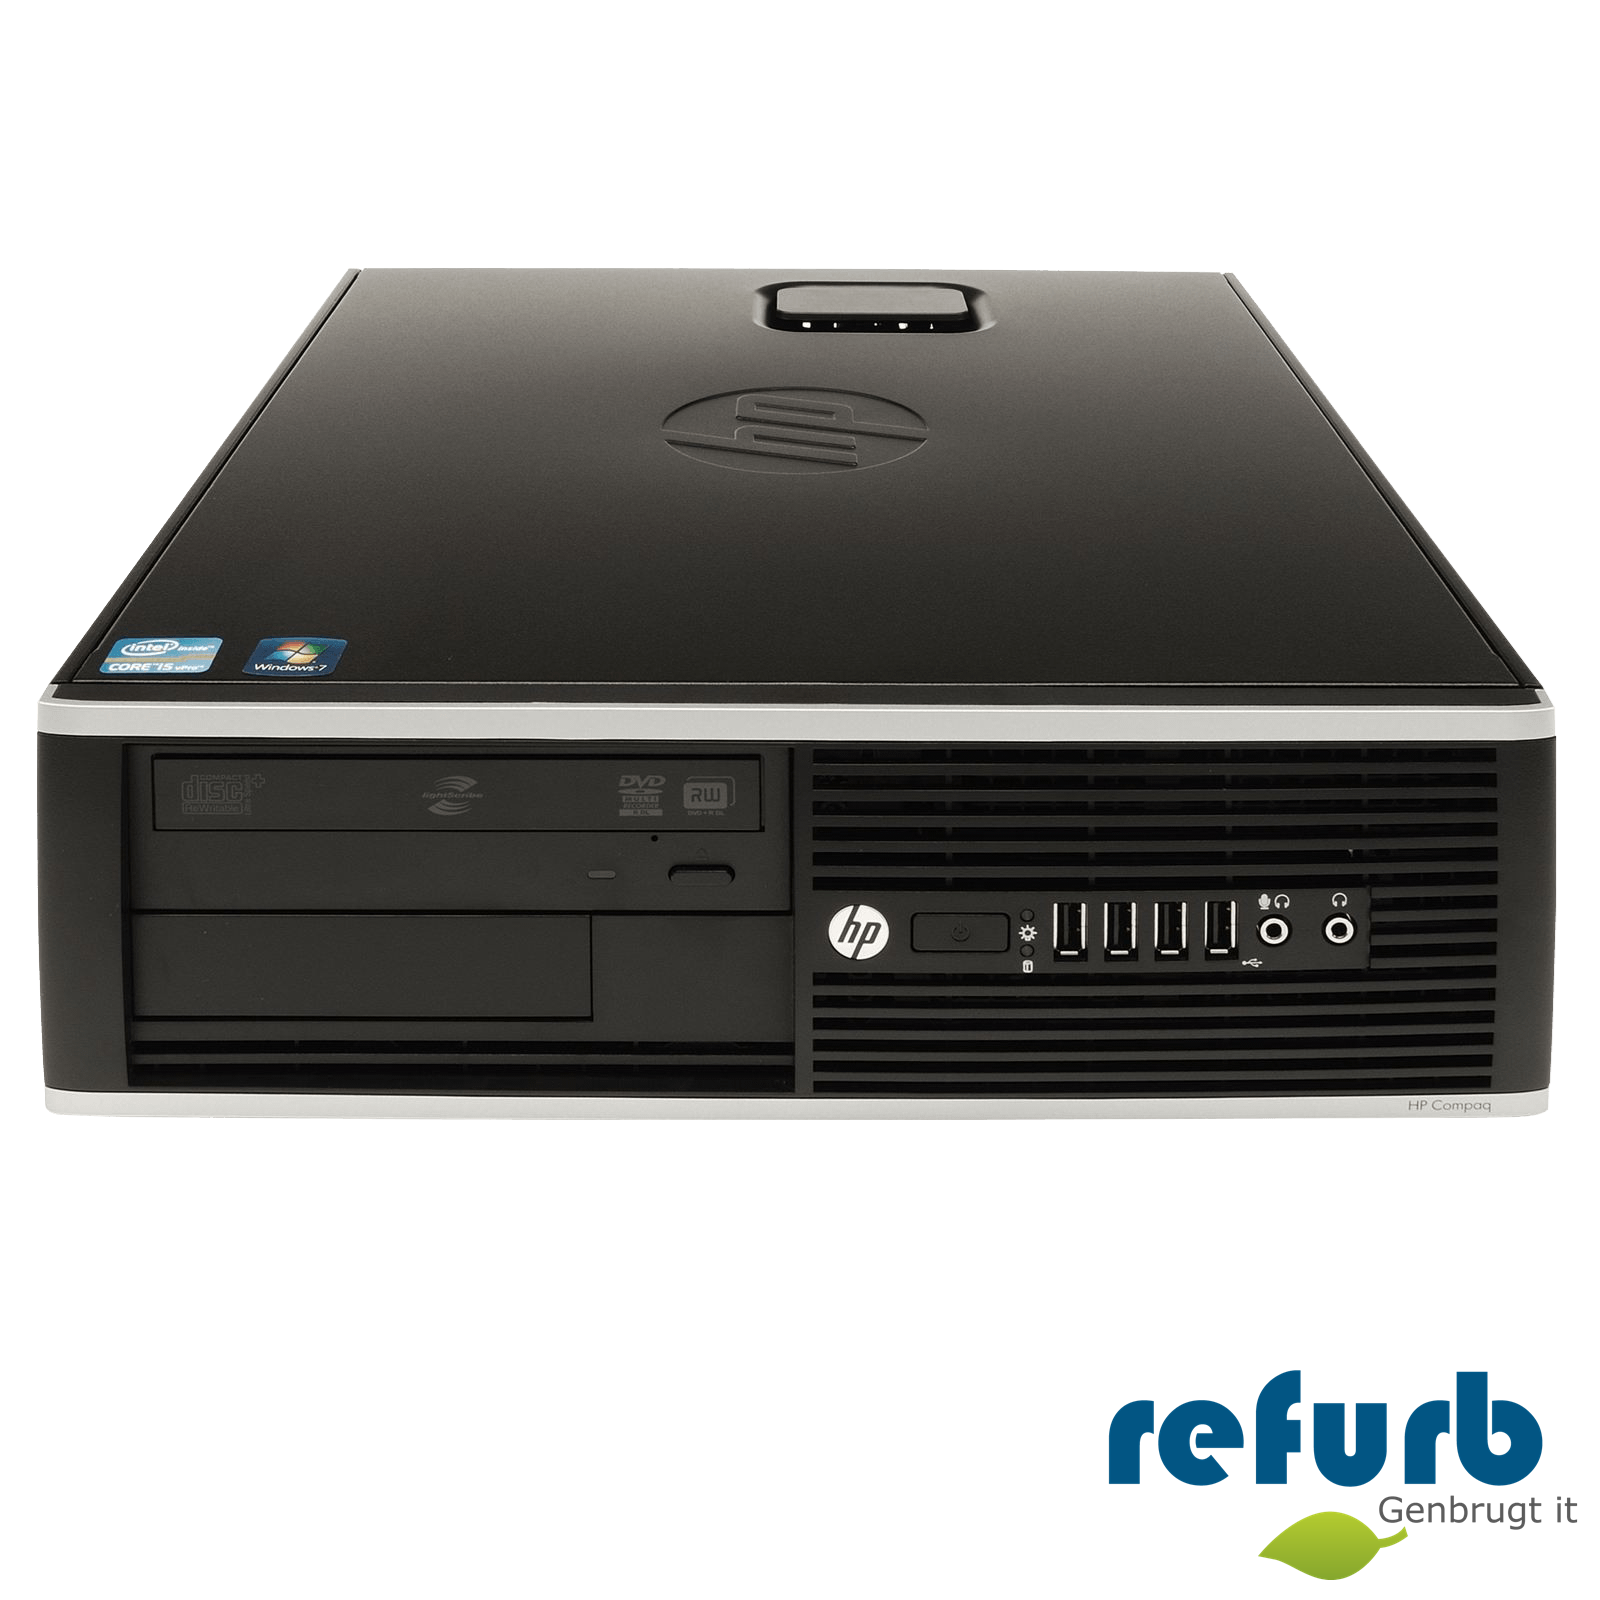 Hp compaq 8100 elite sff fra Hp fra refurb